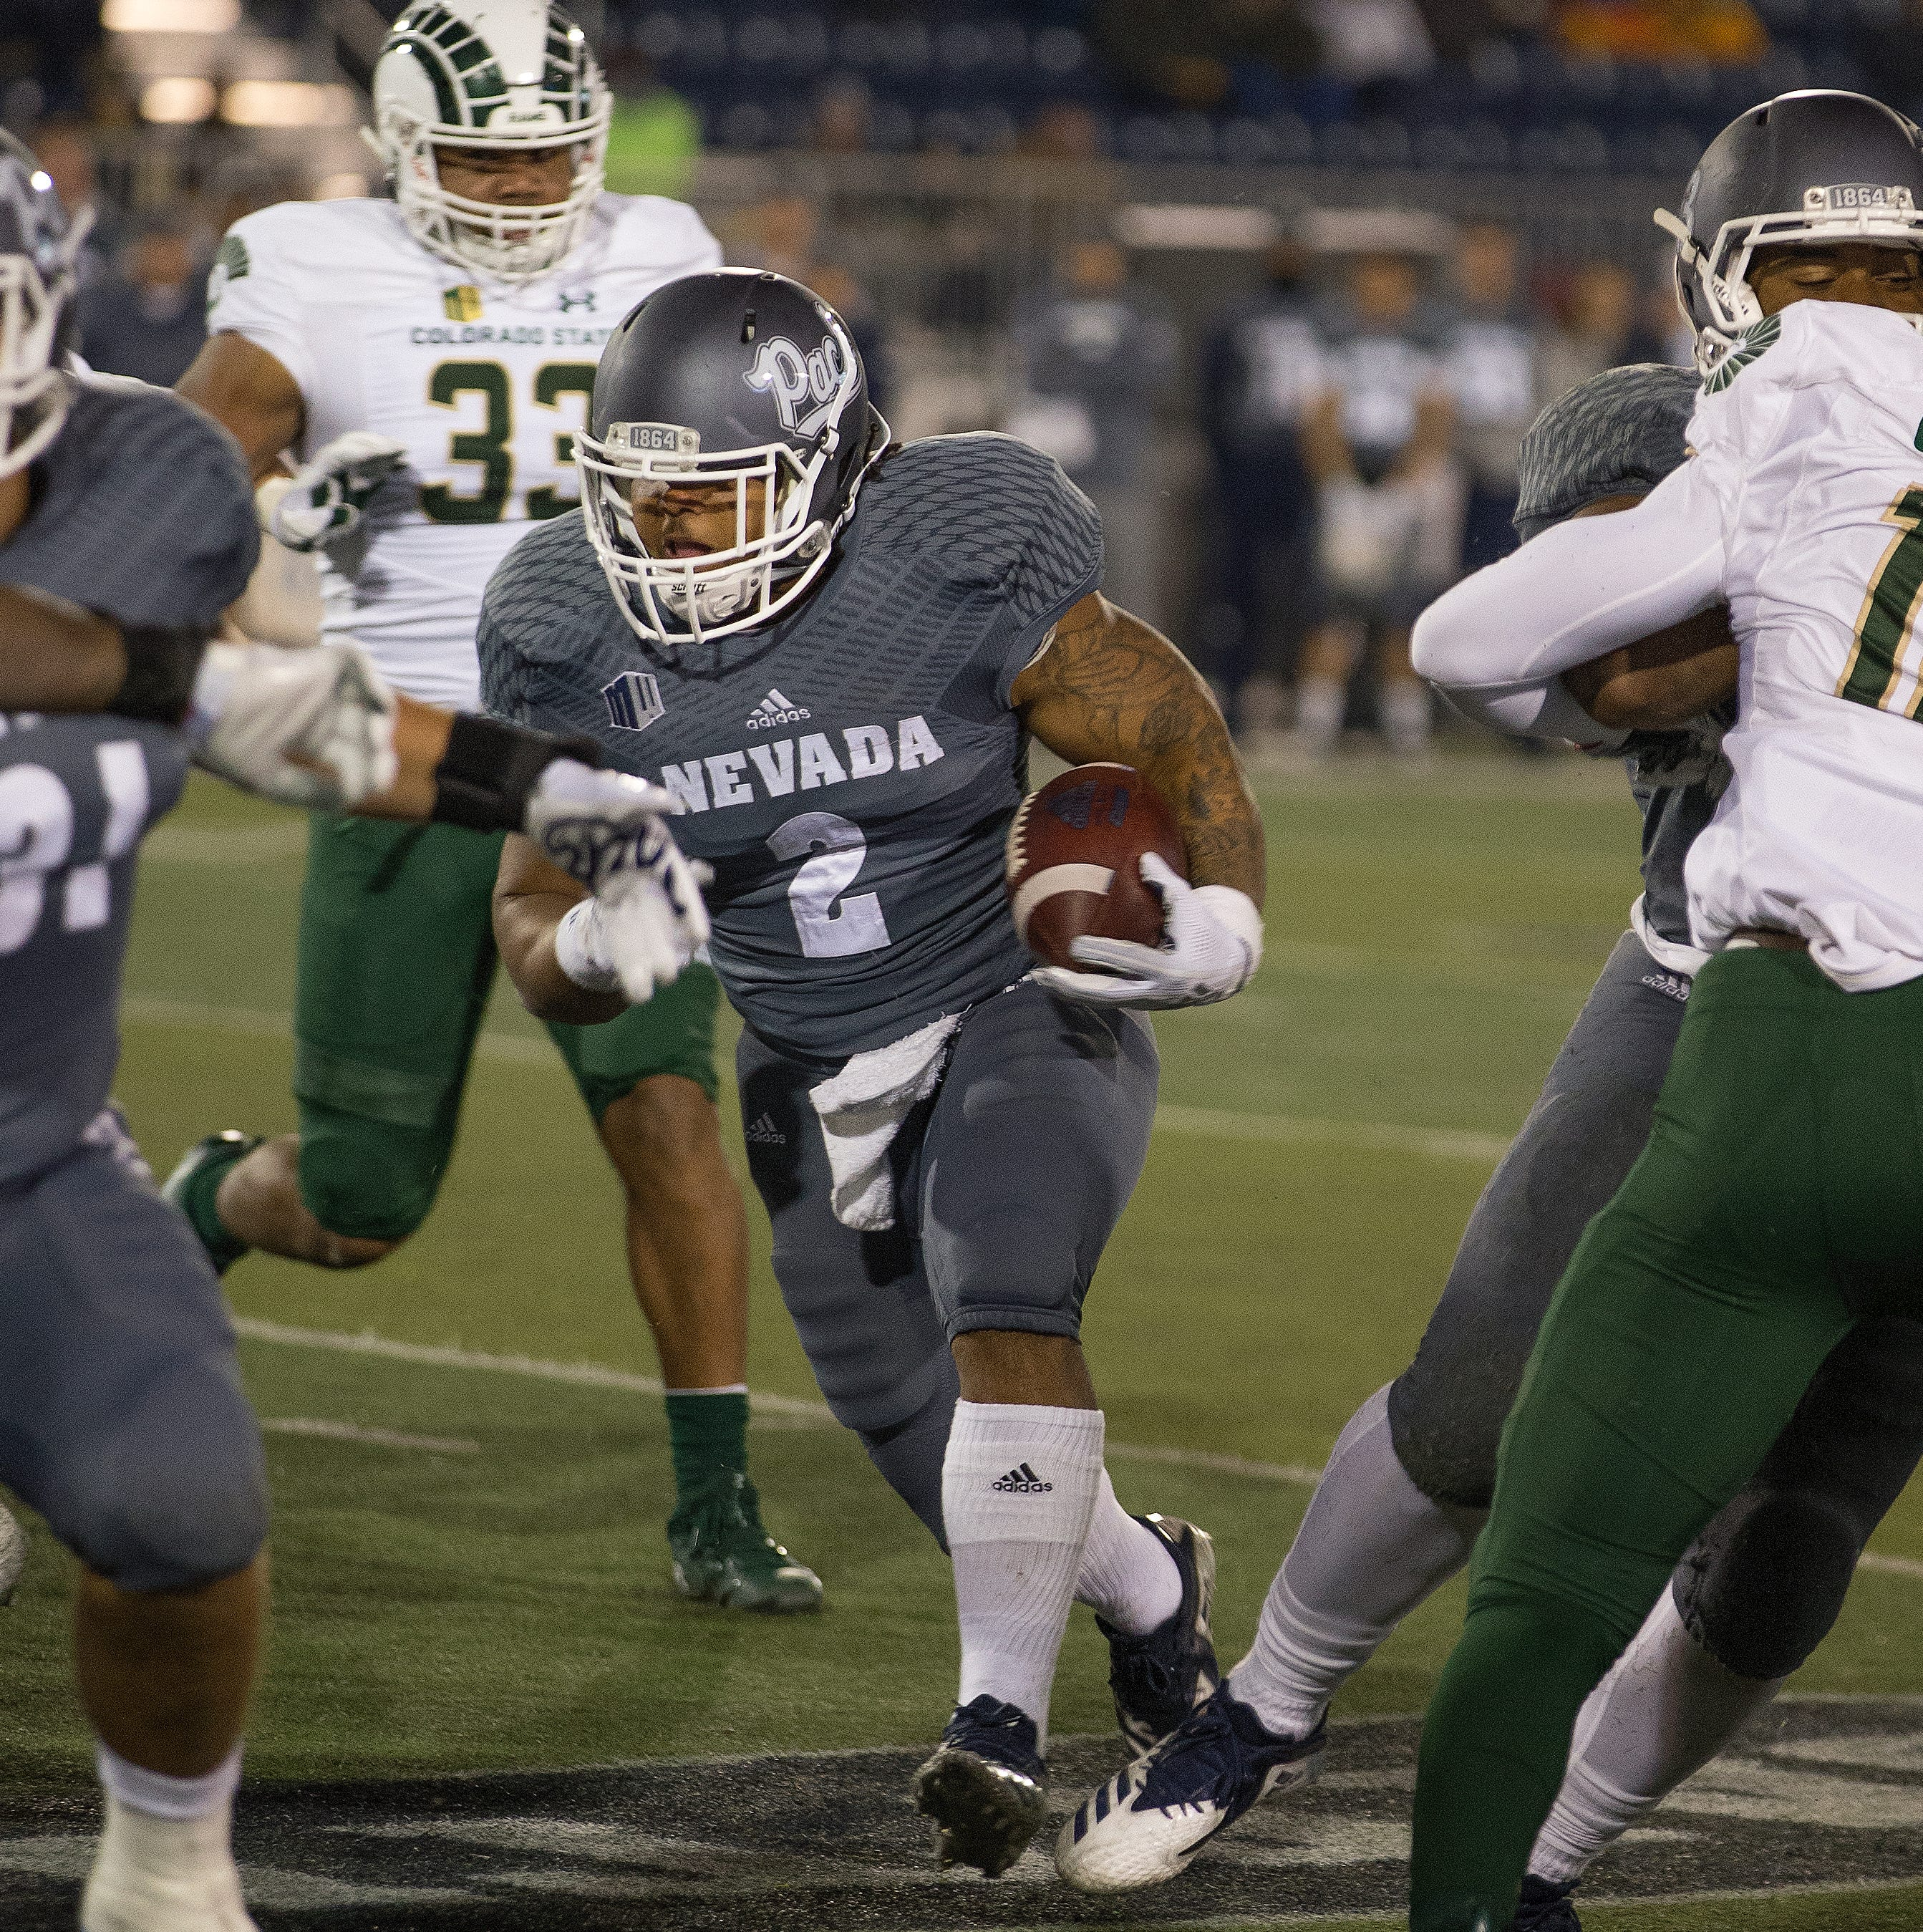 Report card: Another game, another failure for CSU football